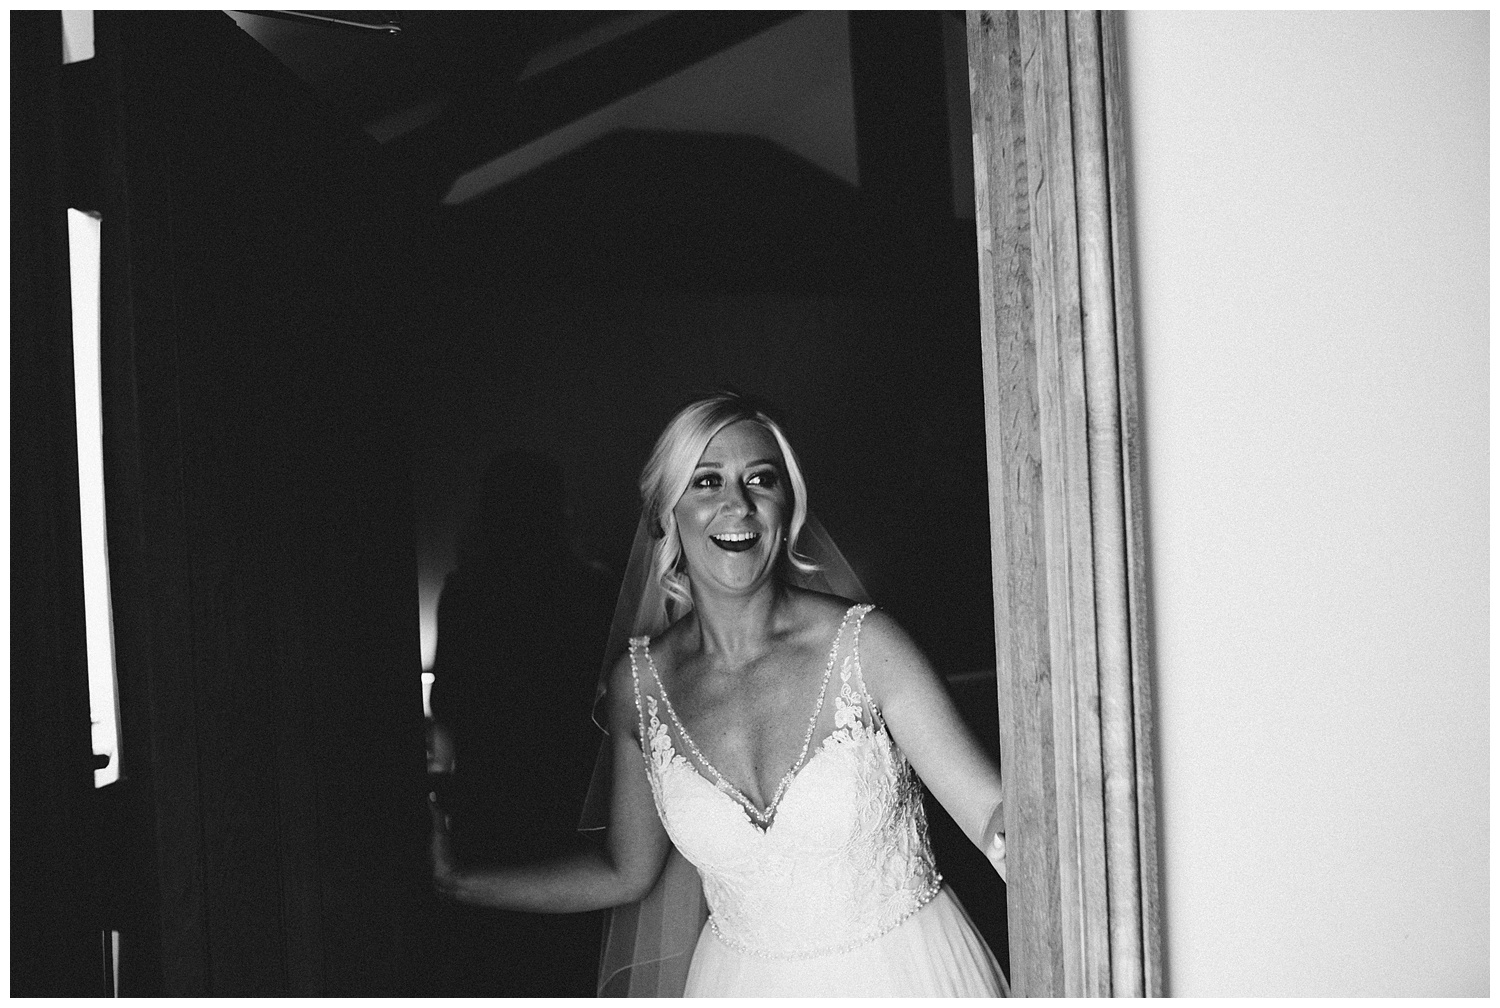 Bride opens door to reveal her wedding dress dress during bridal prep at the granary at fawsley